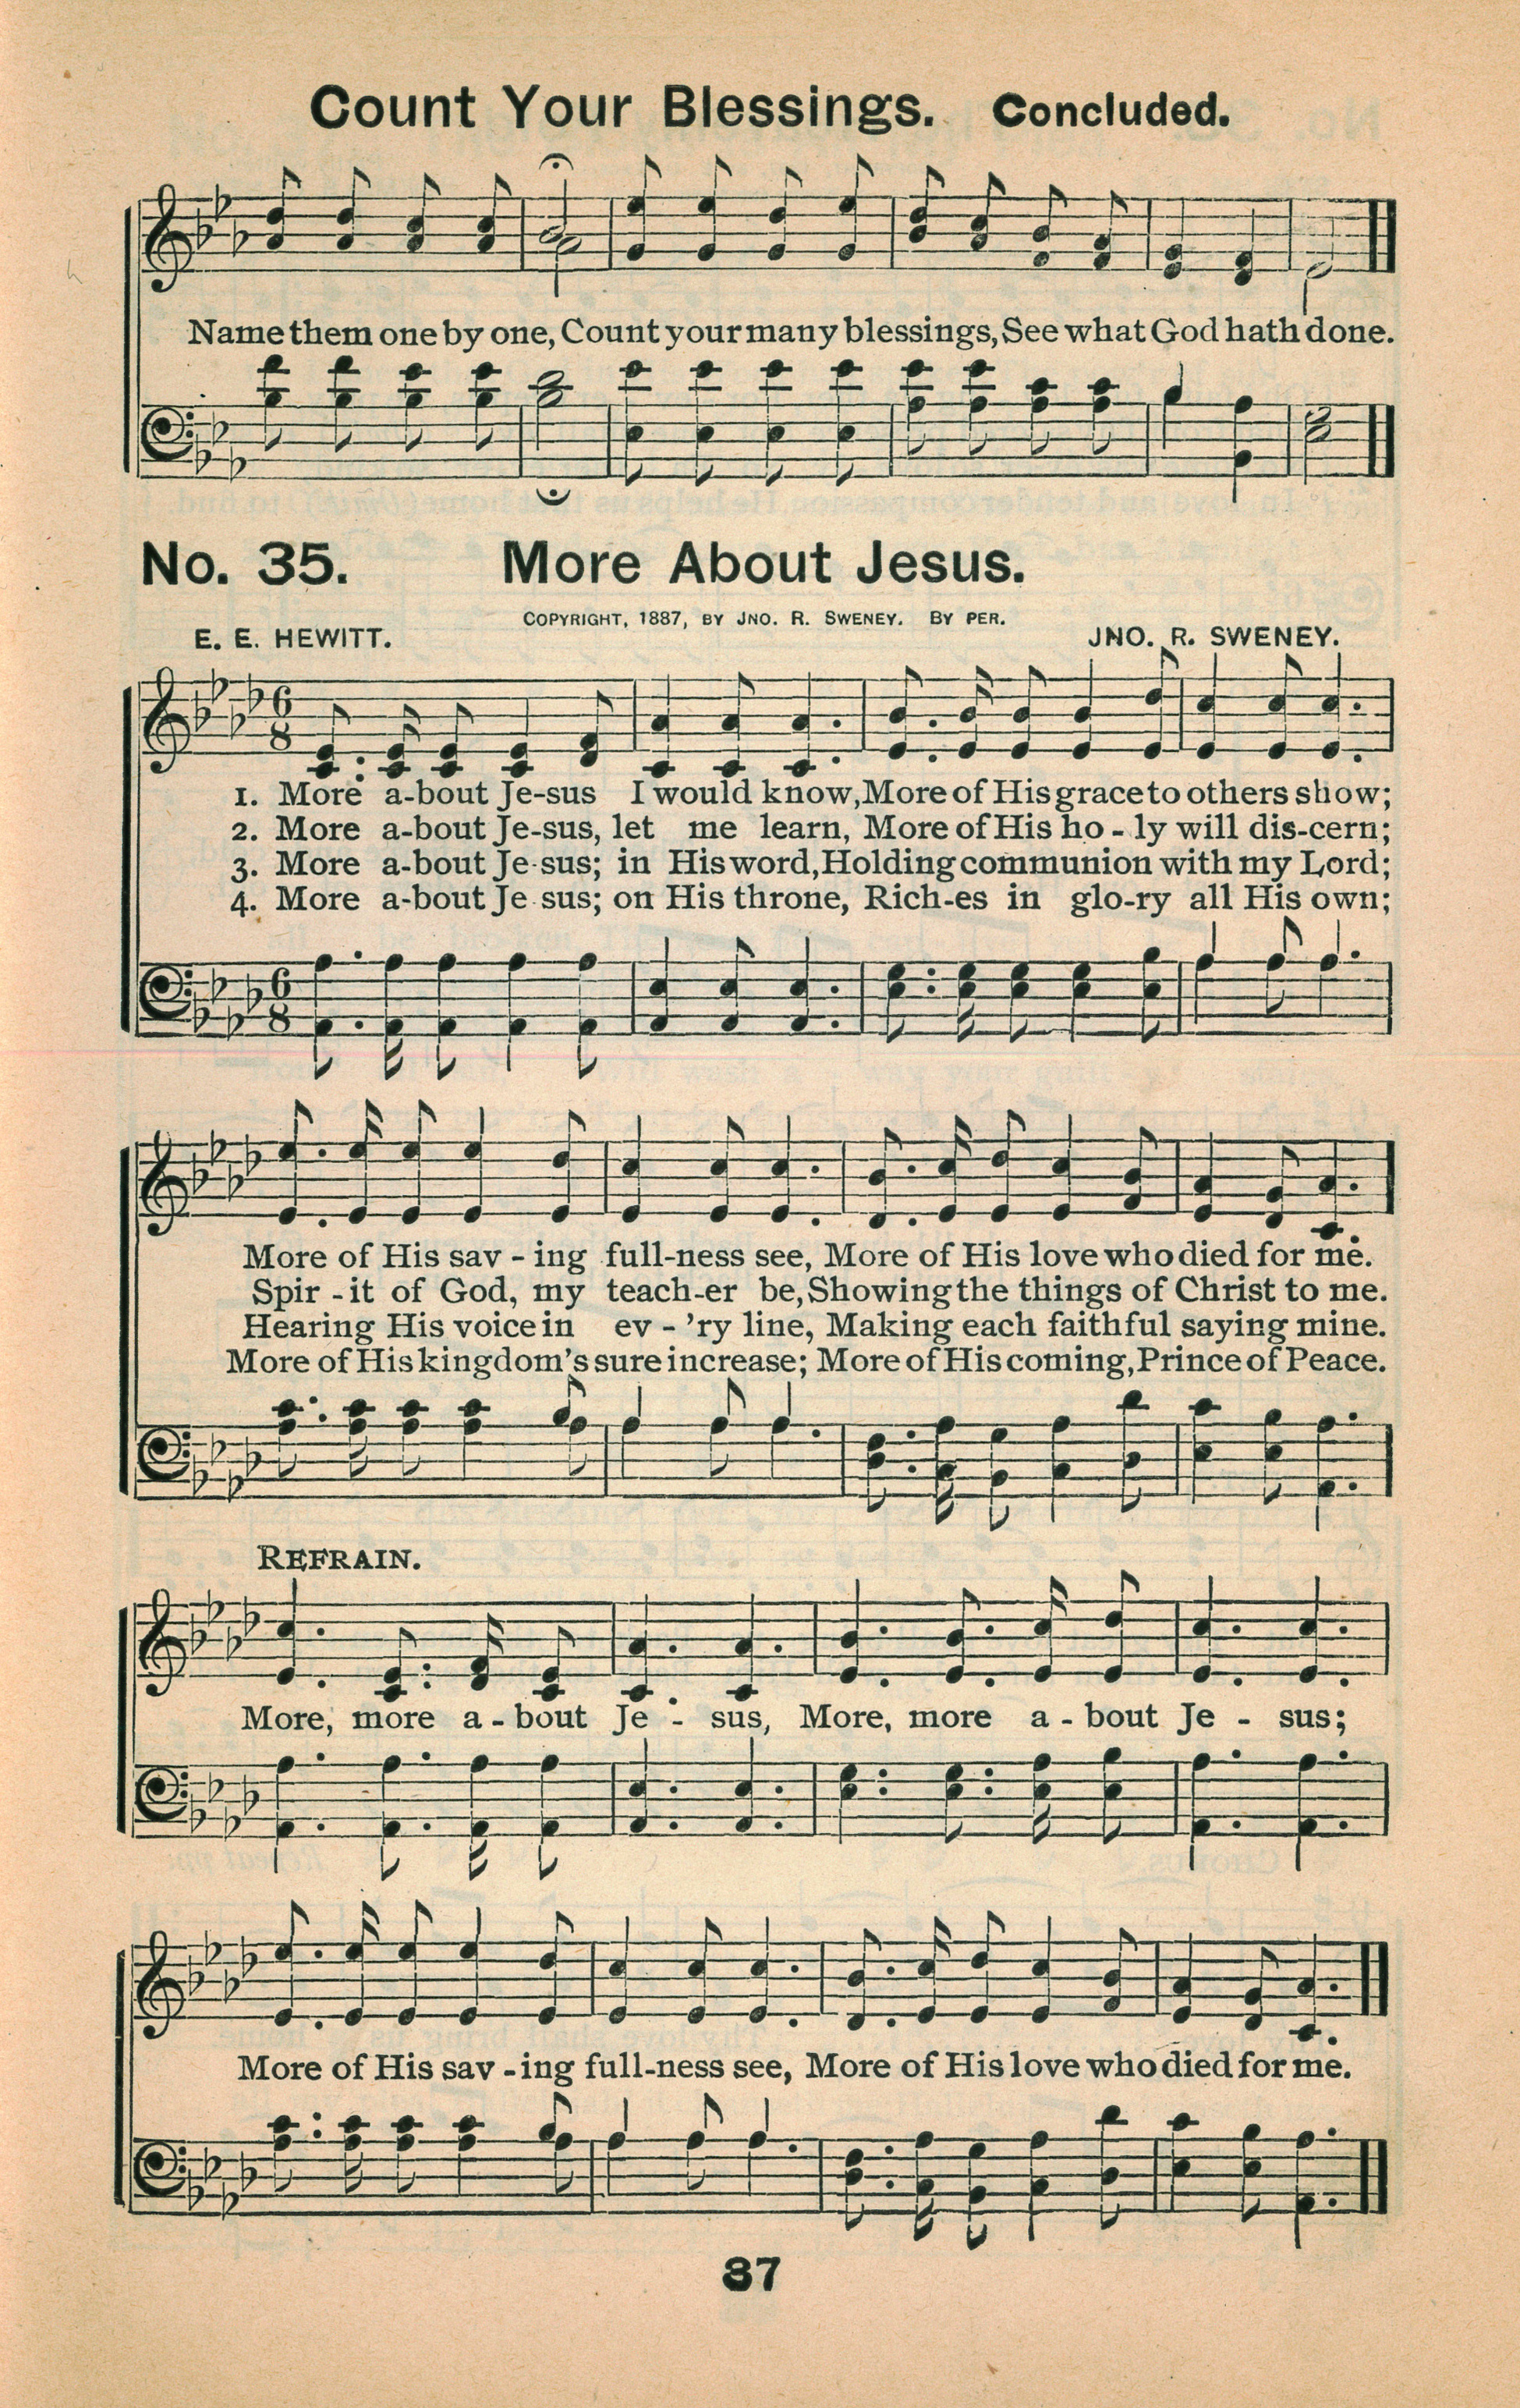 CountYourBlessings-SongsforYoungPeople-1897_001b.jpg